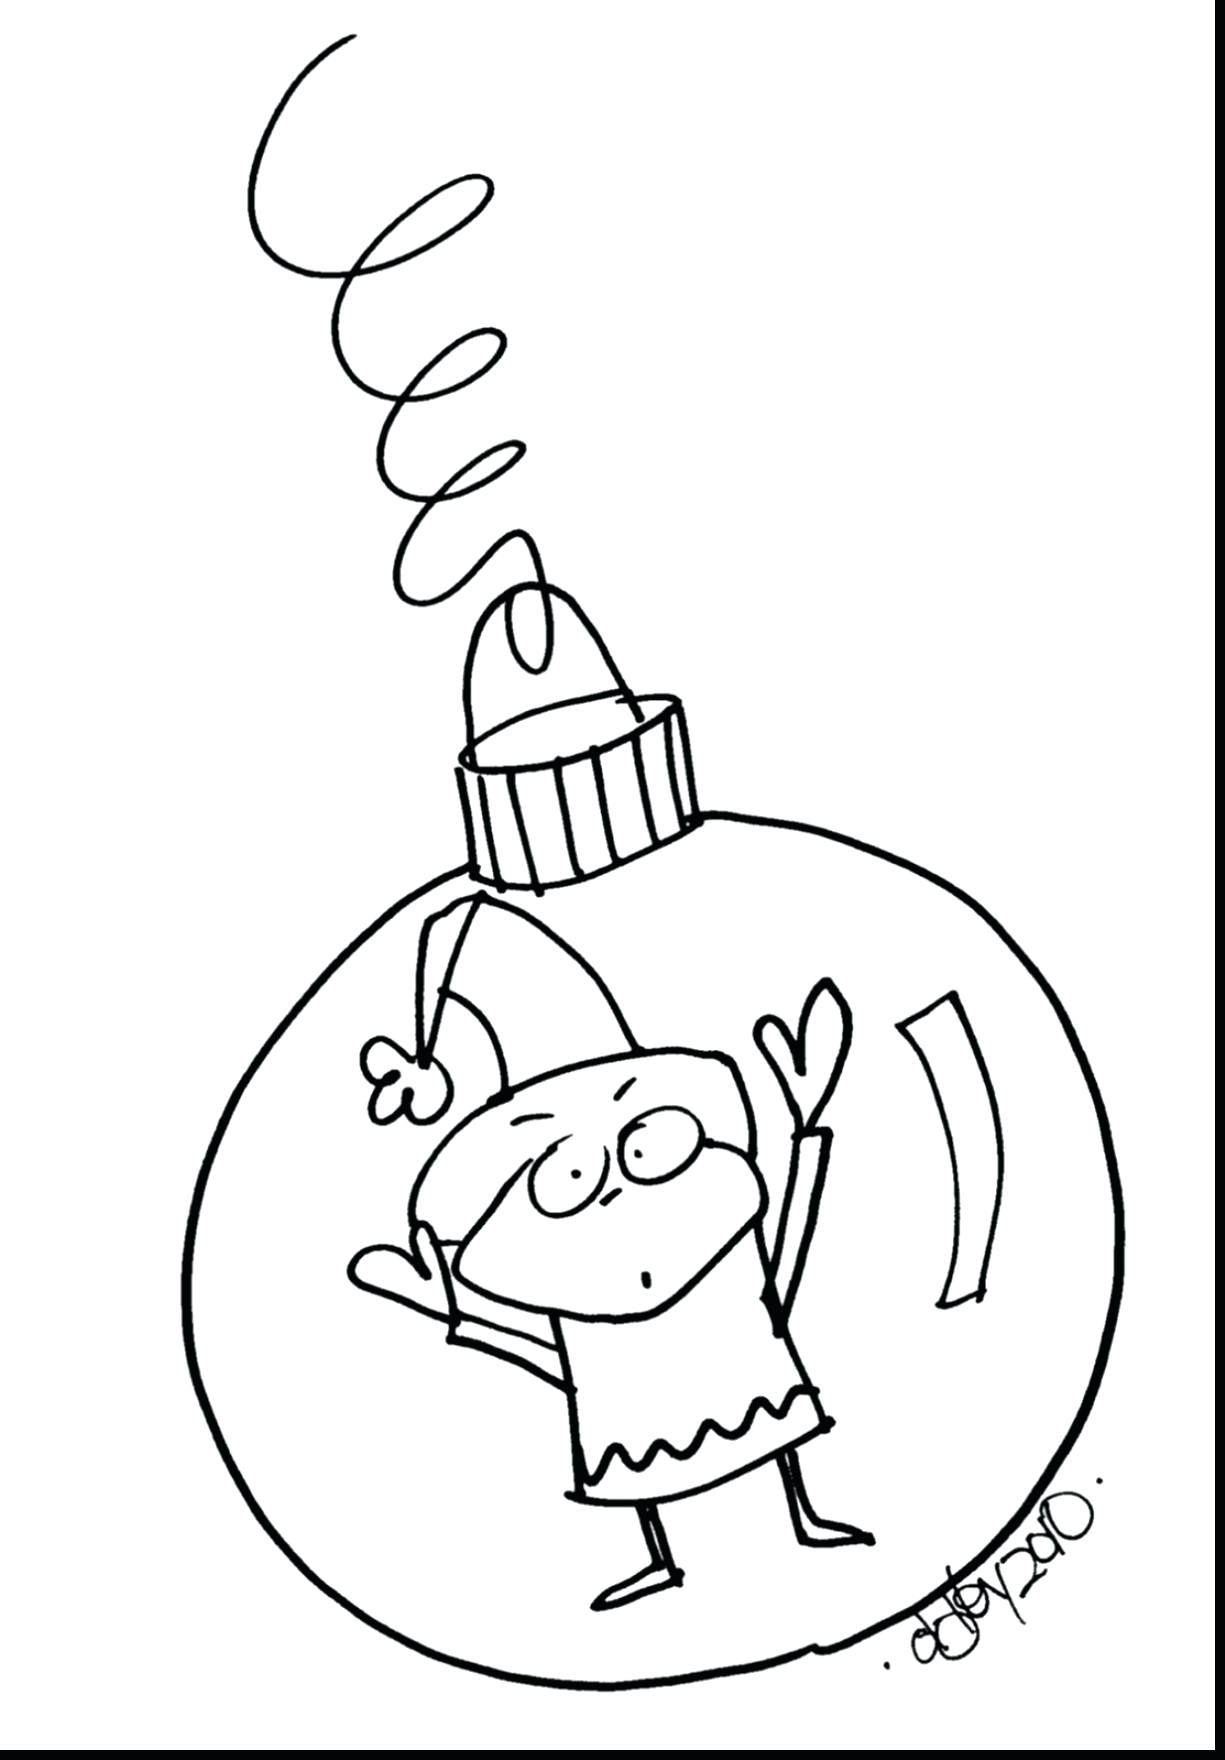 1225x1760 Coloring Pages Cat In The Hat Coloring Pages Knows A Lot